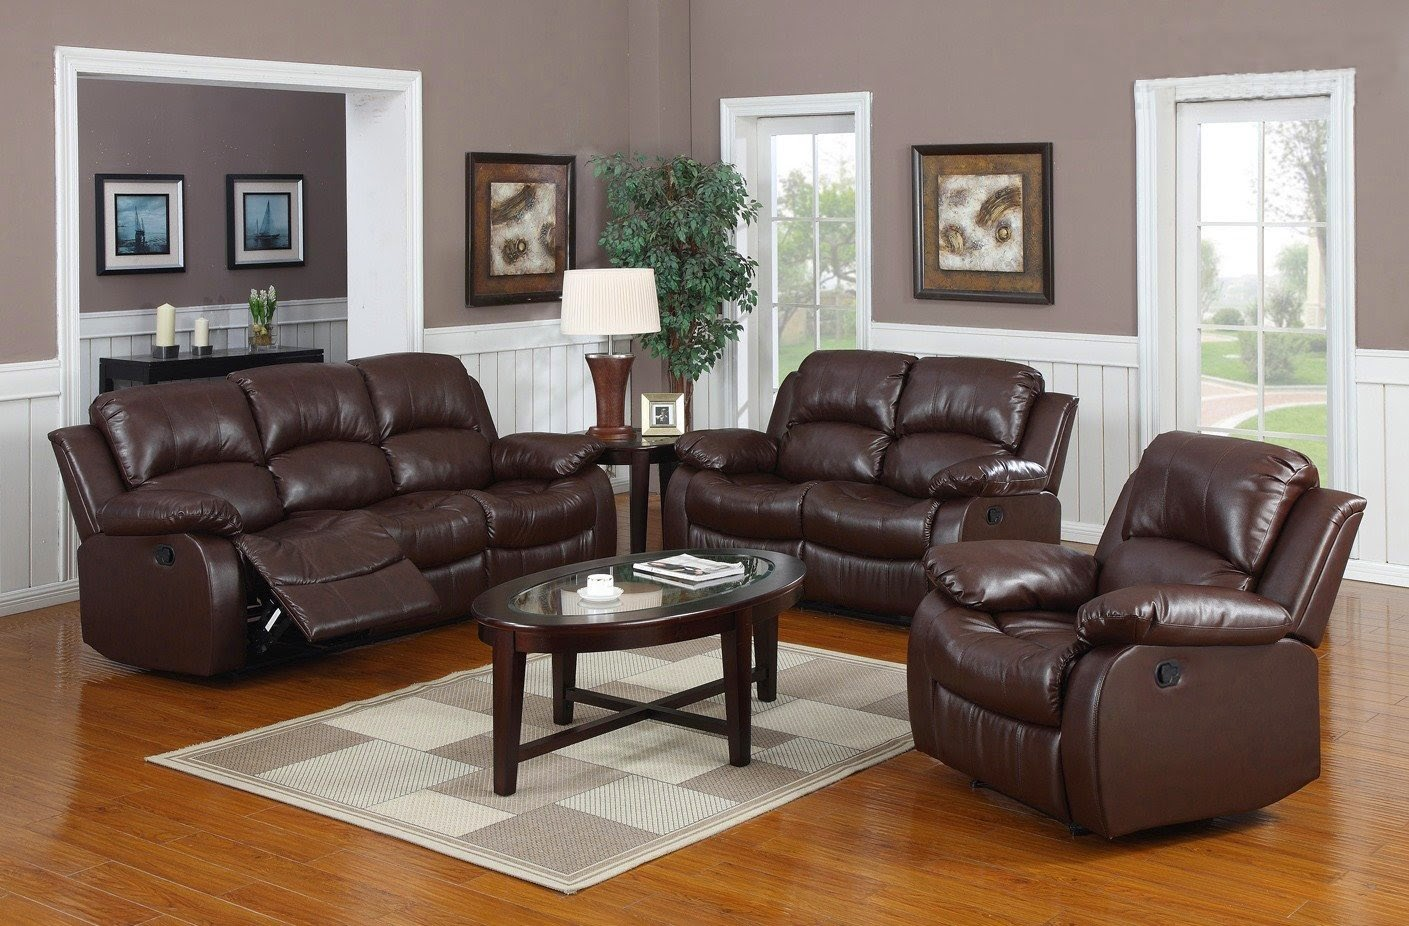 Huntington 3-pc Bonded Leather Sofa u0026 Loveseat u0026 Chair Set with 5 Recliners & Cheap Reclining Sofas Sale: Leather Reclining Sofa Costco islam-shia.org